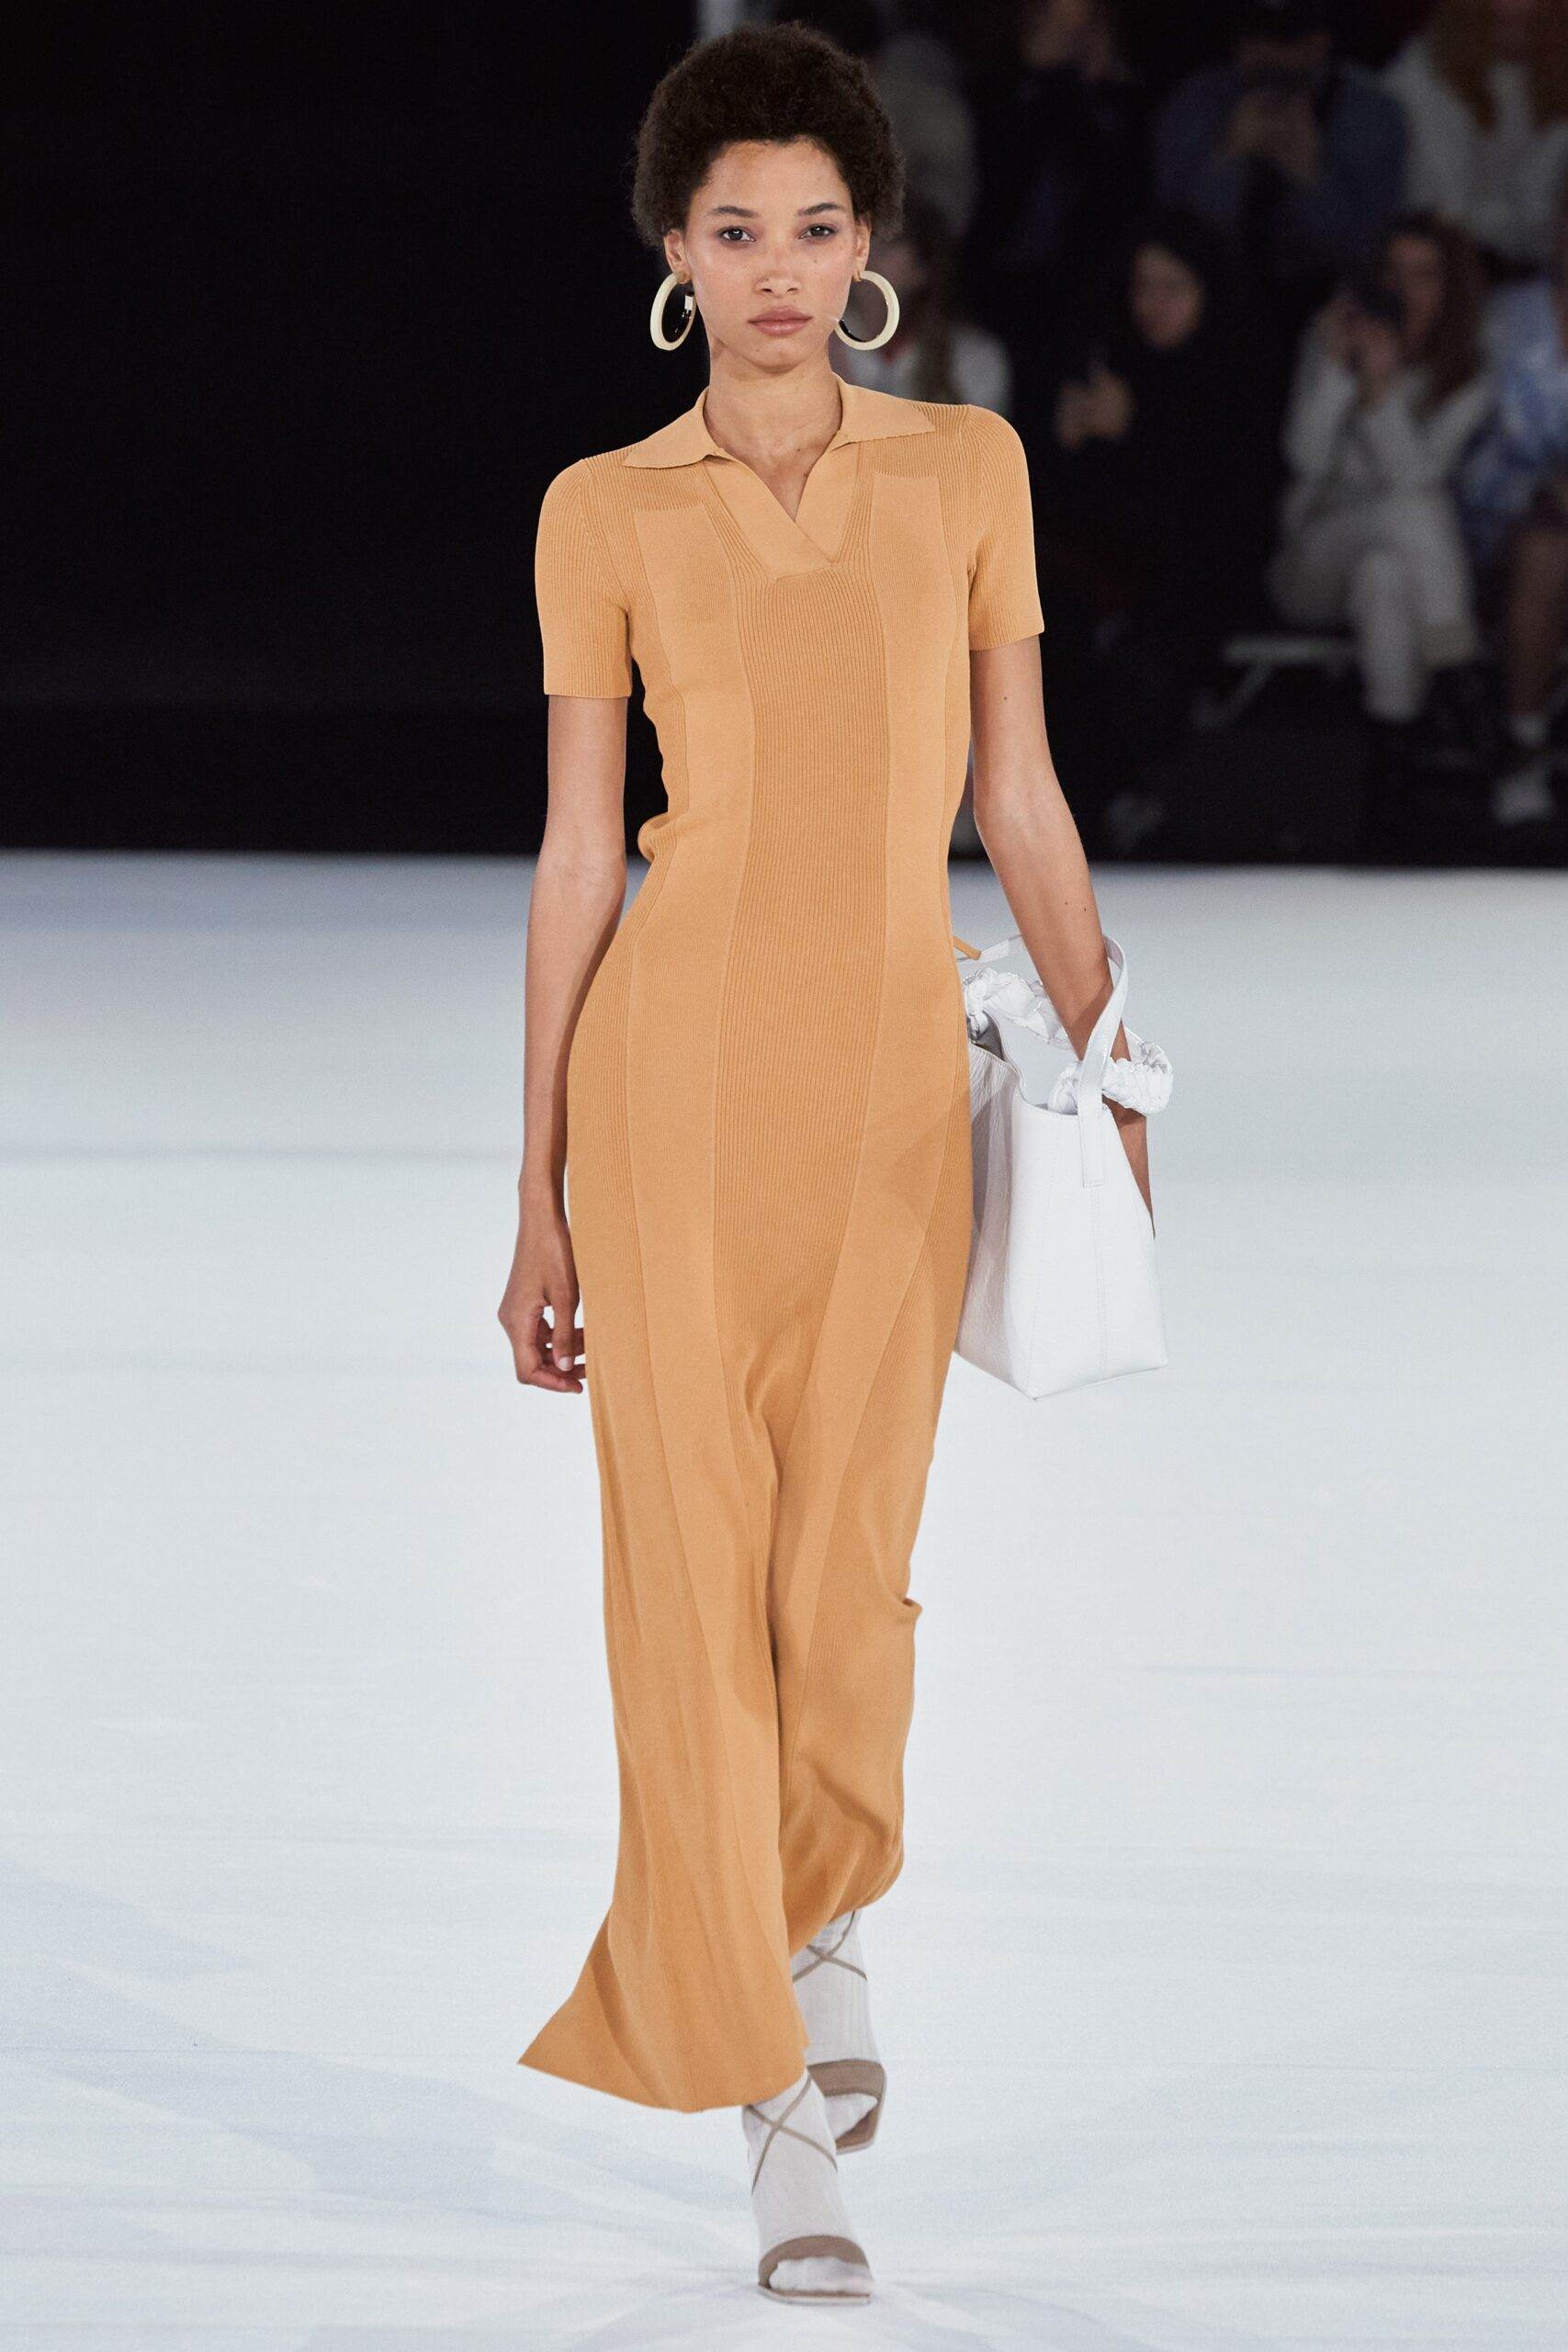 Jacquemus Fall 2020 ready-to-wear